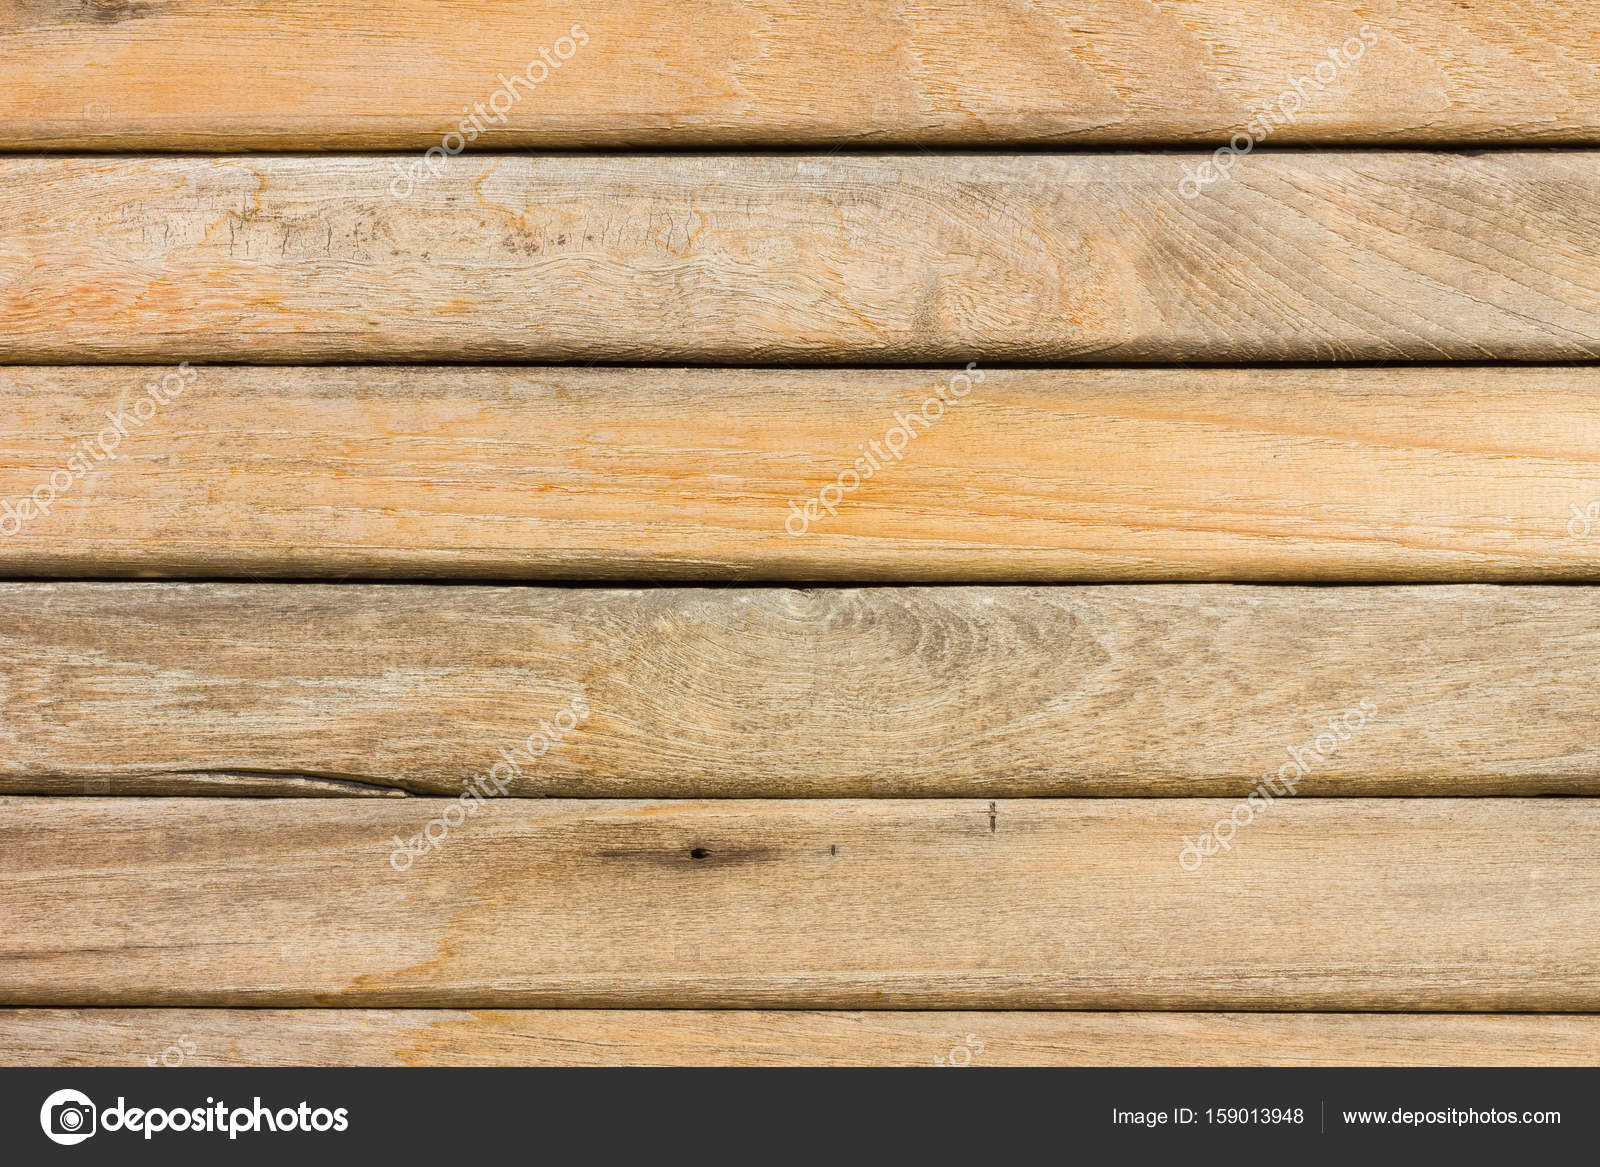 wood texture background for design with copy space for text or image ...